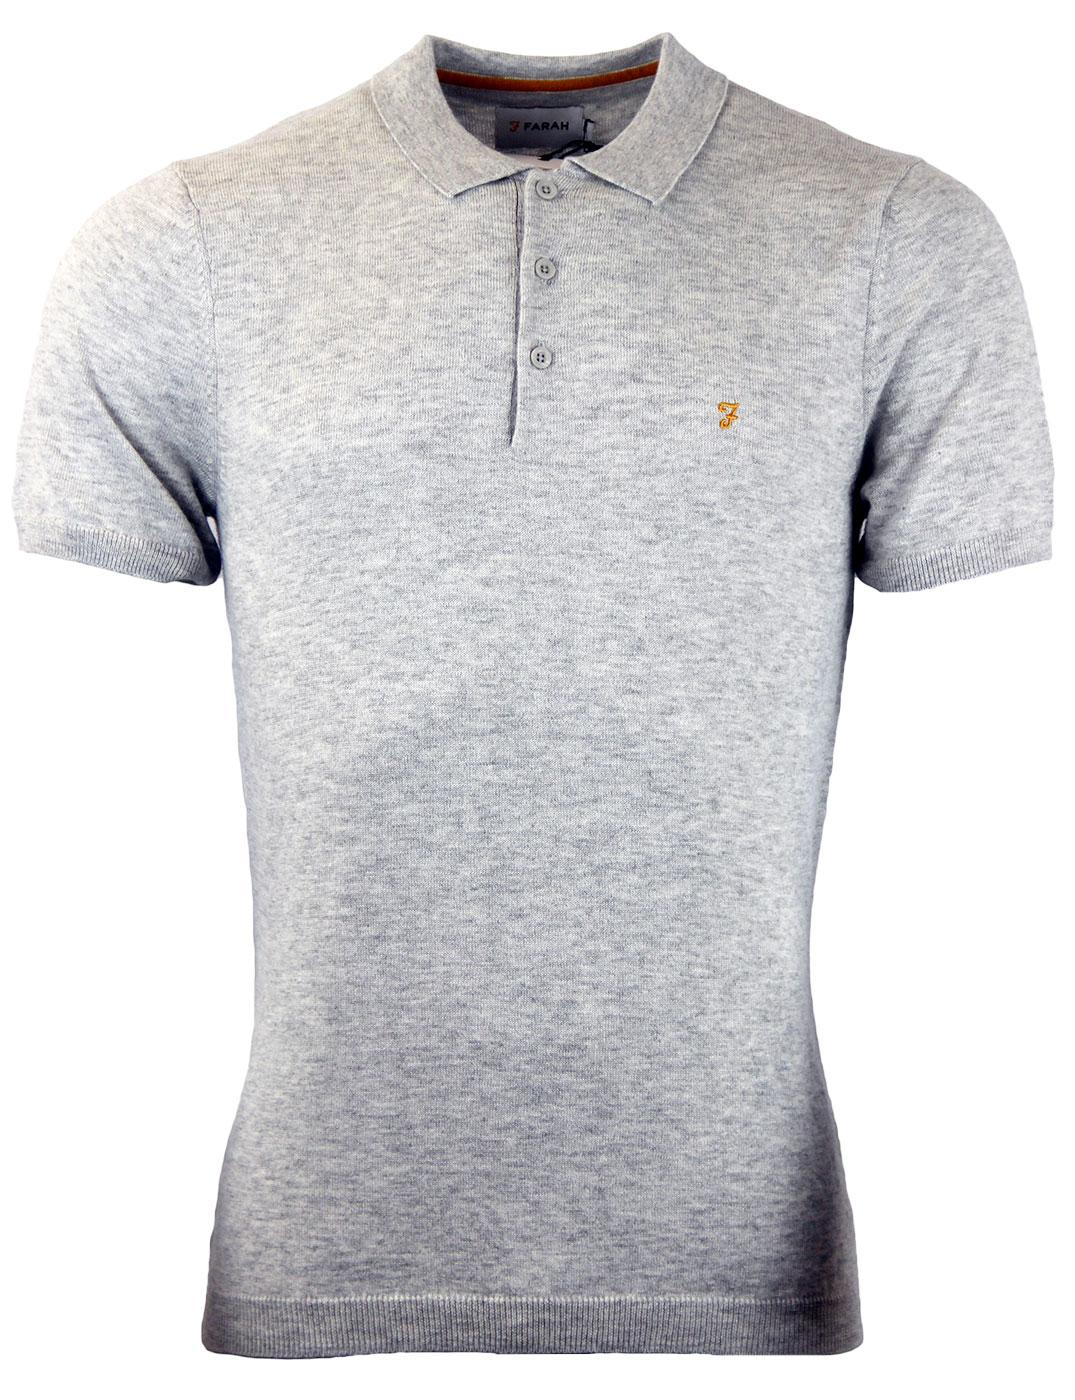 The Affrey FARAH Retro Mod Knitted Polo Shirt (LG)